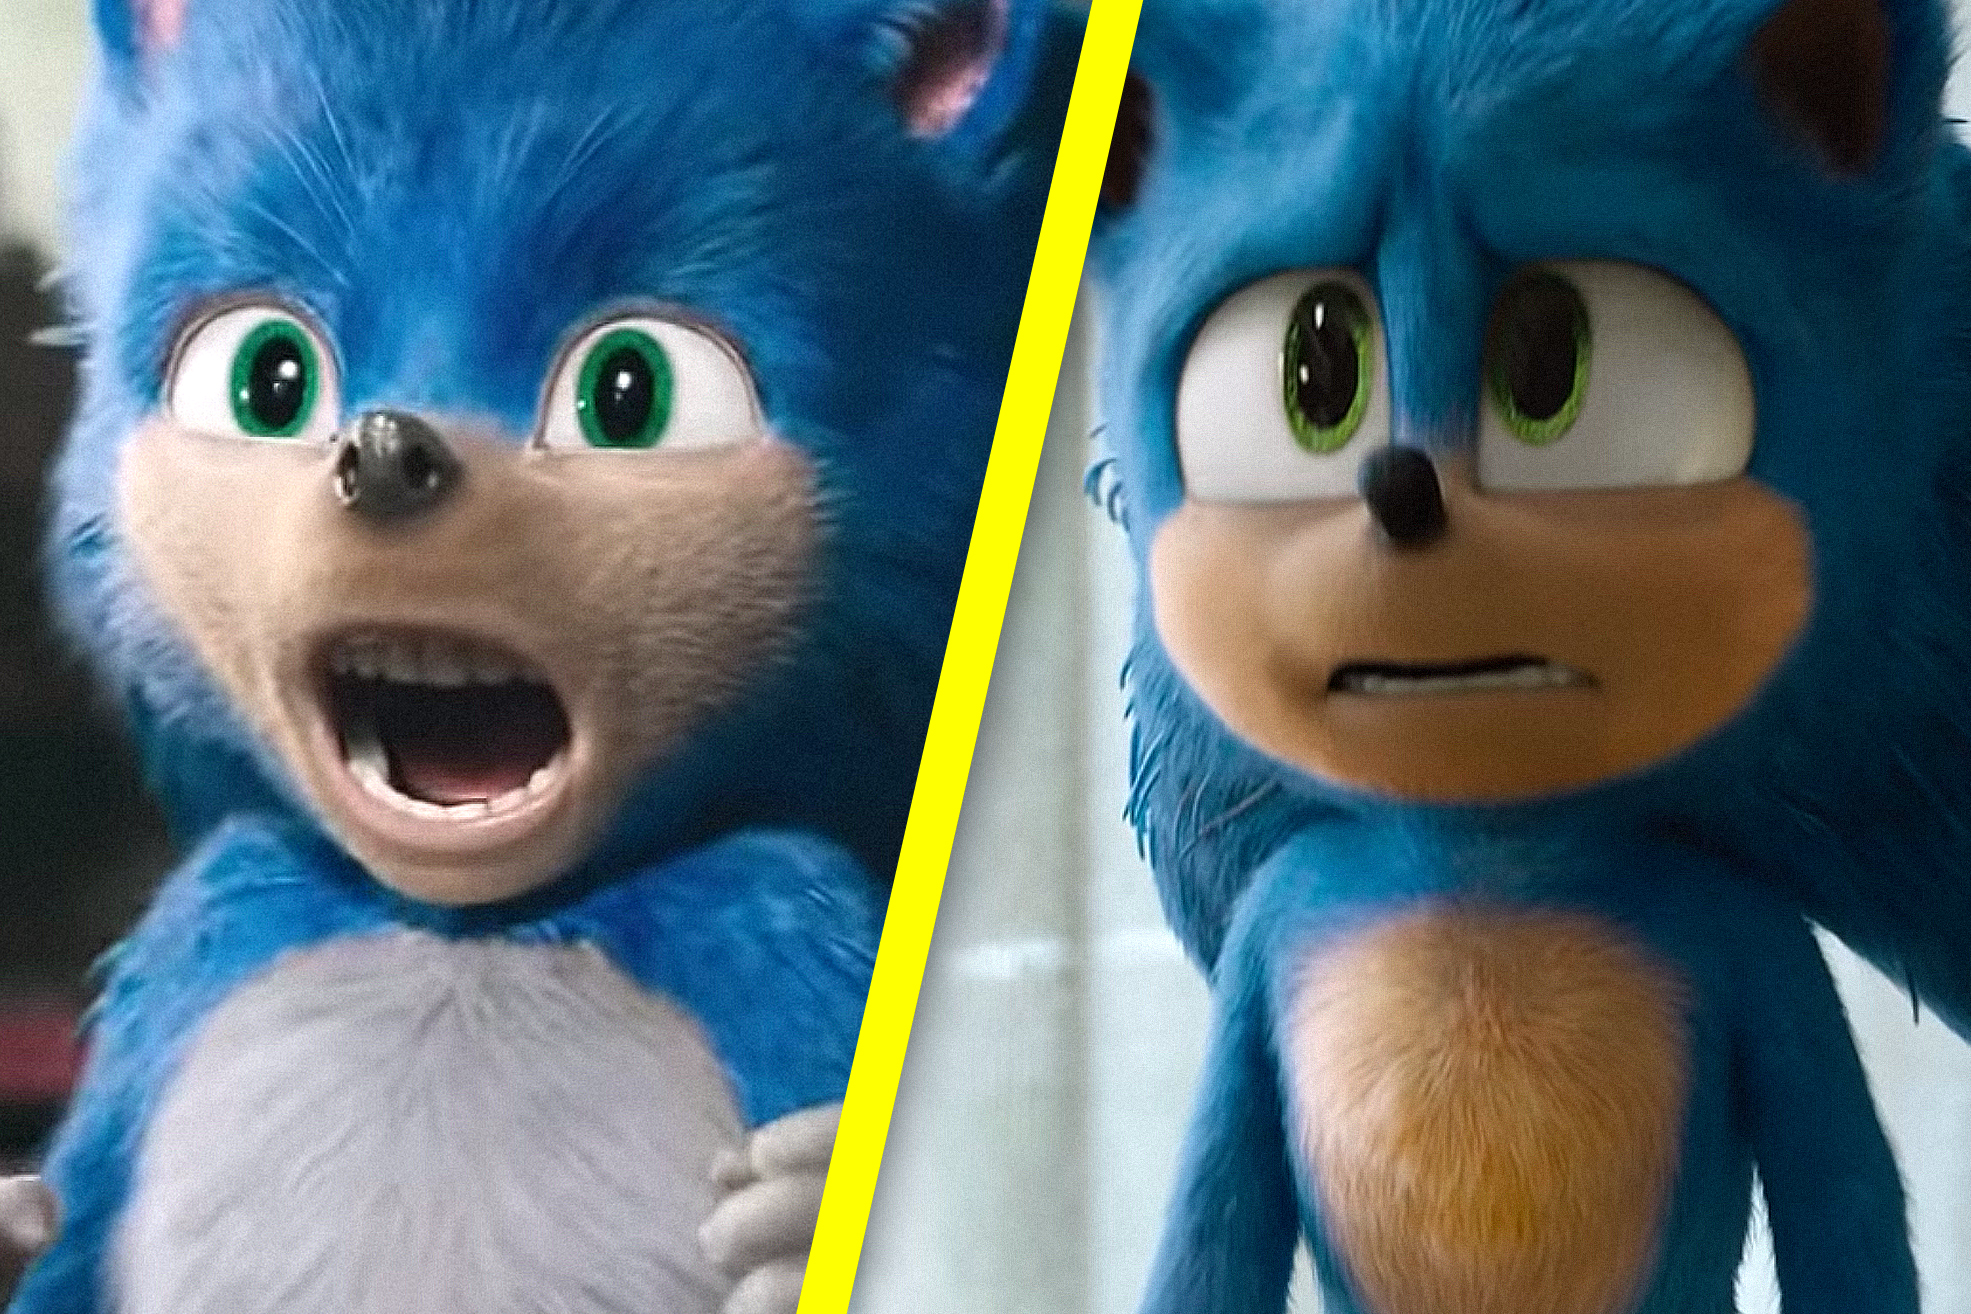 'Sonic the Hedgehog' (and porn) represents the future of content